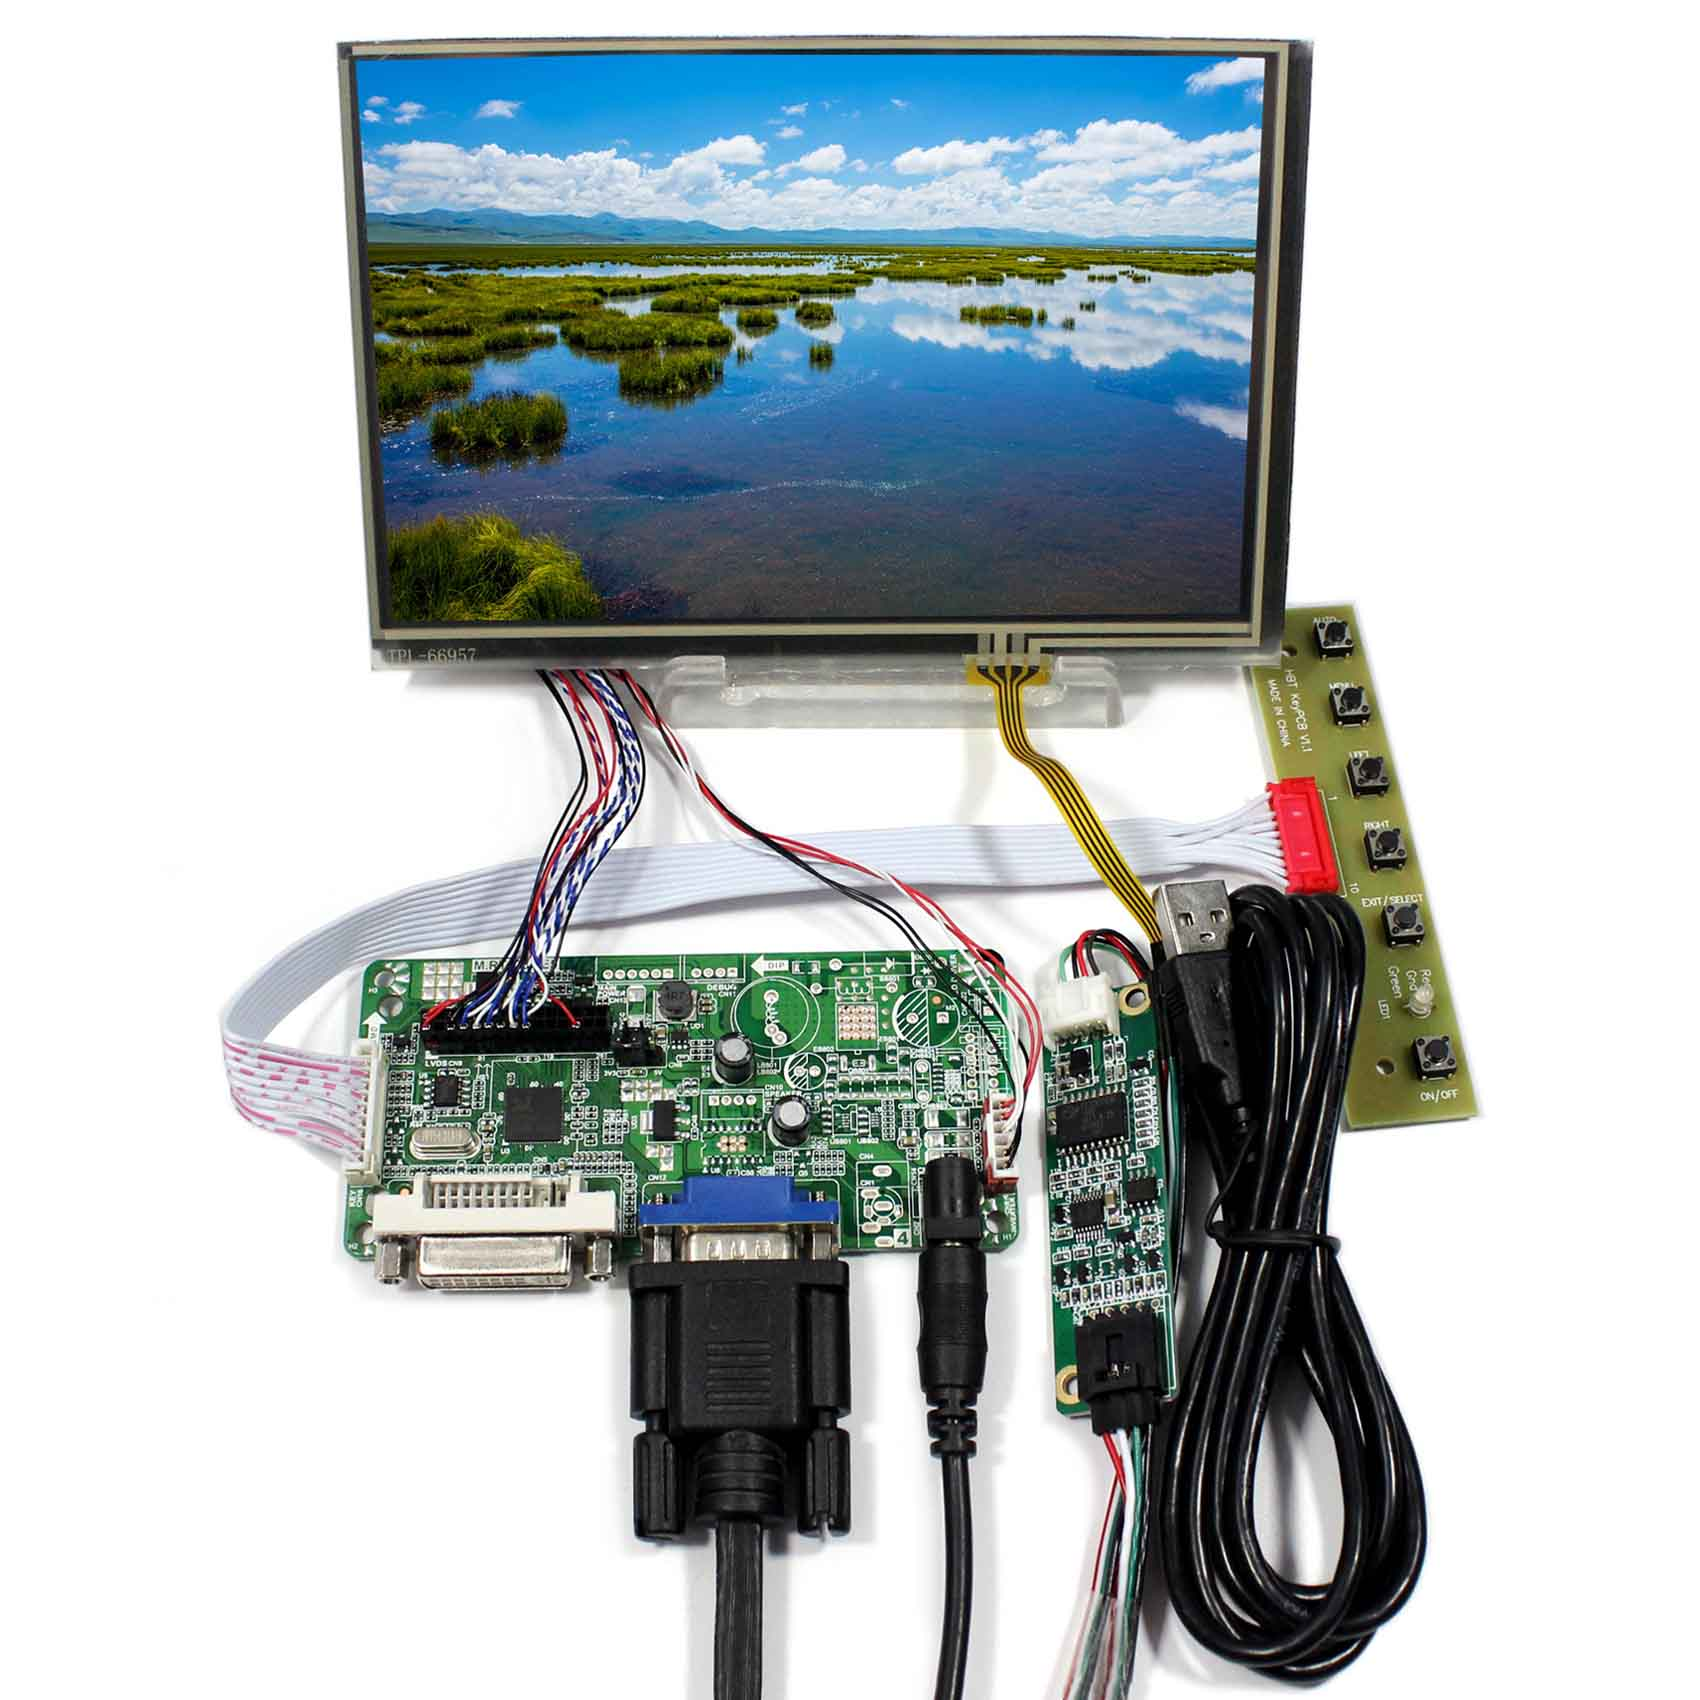 Details About 7 1280x800 N070ICG LD1 IPS LCD Touch Screen VGA DVI Controller Board